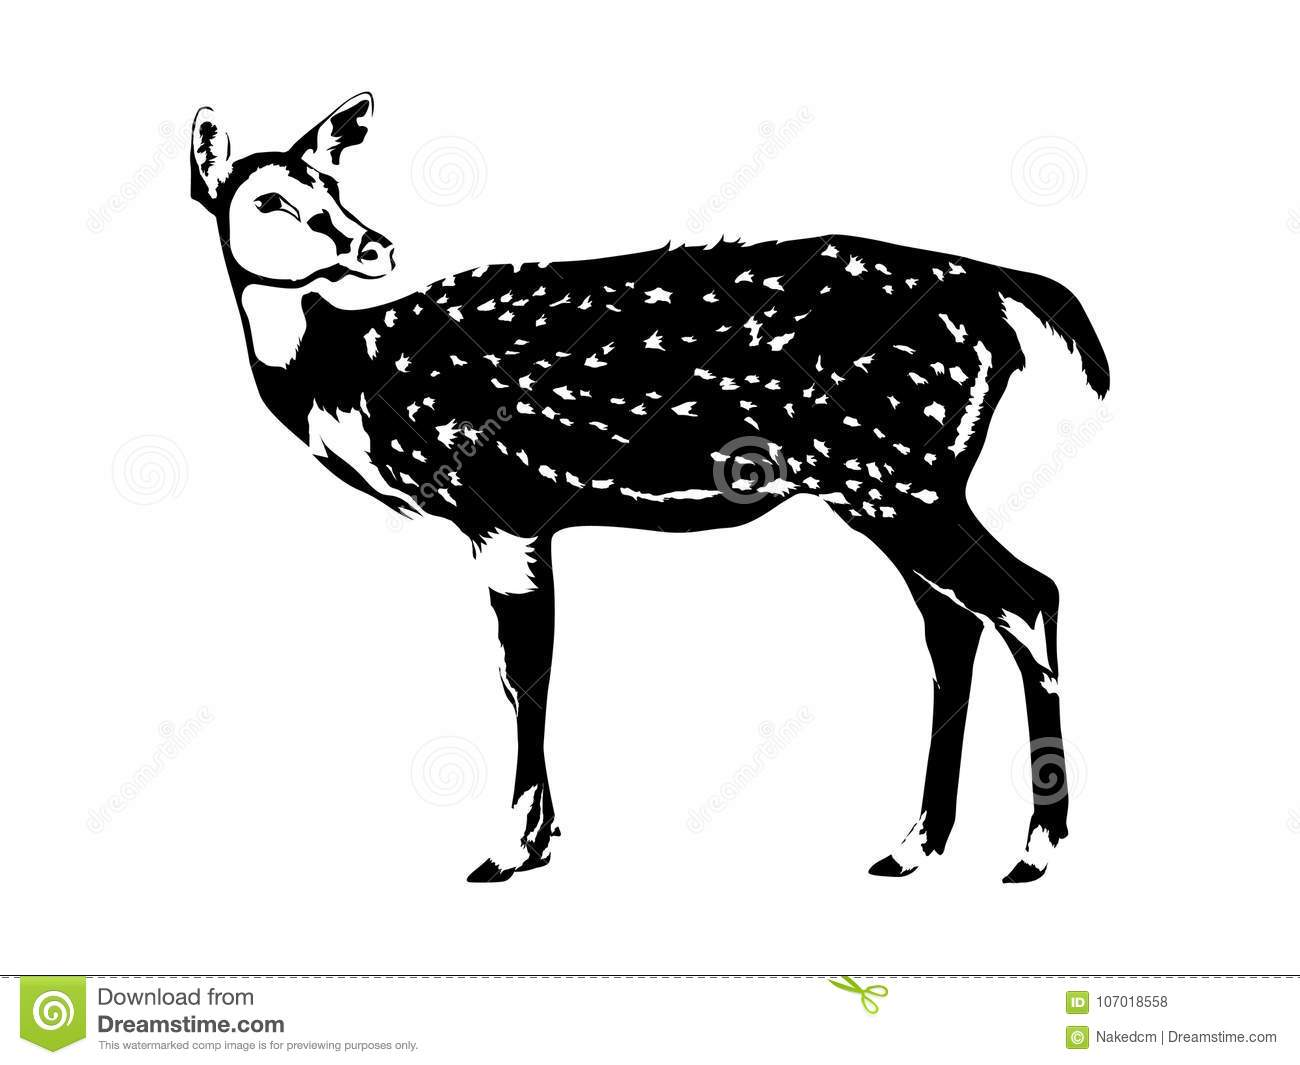 Deer Silhouette In Black And White Stock Vector Illustration of